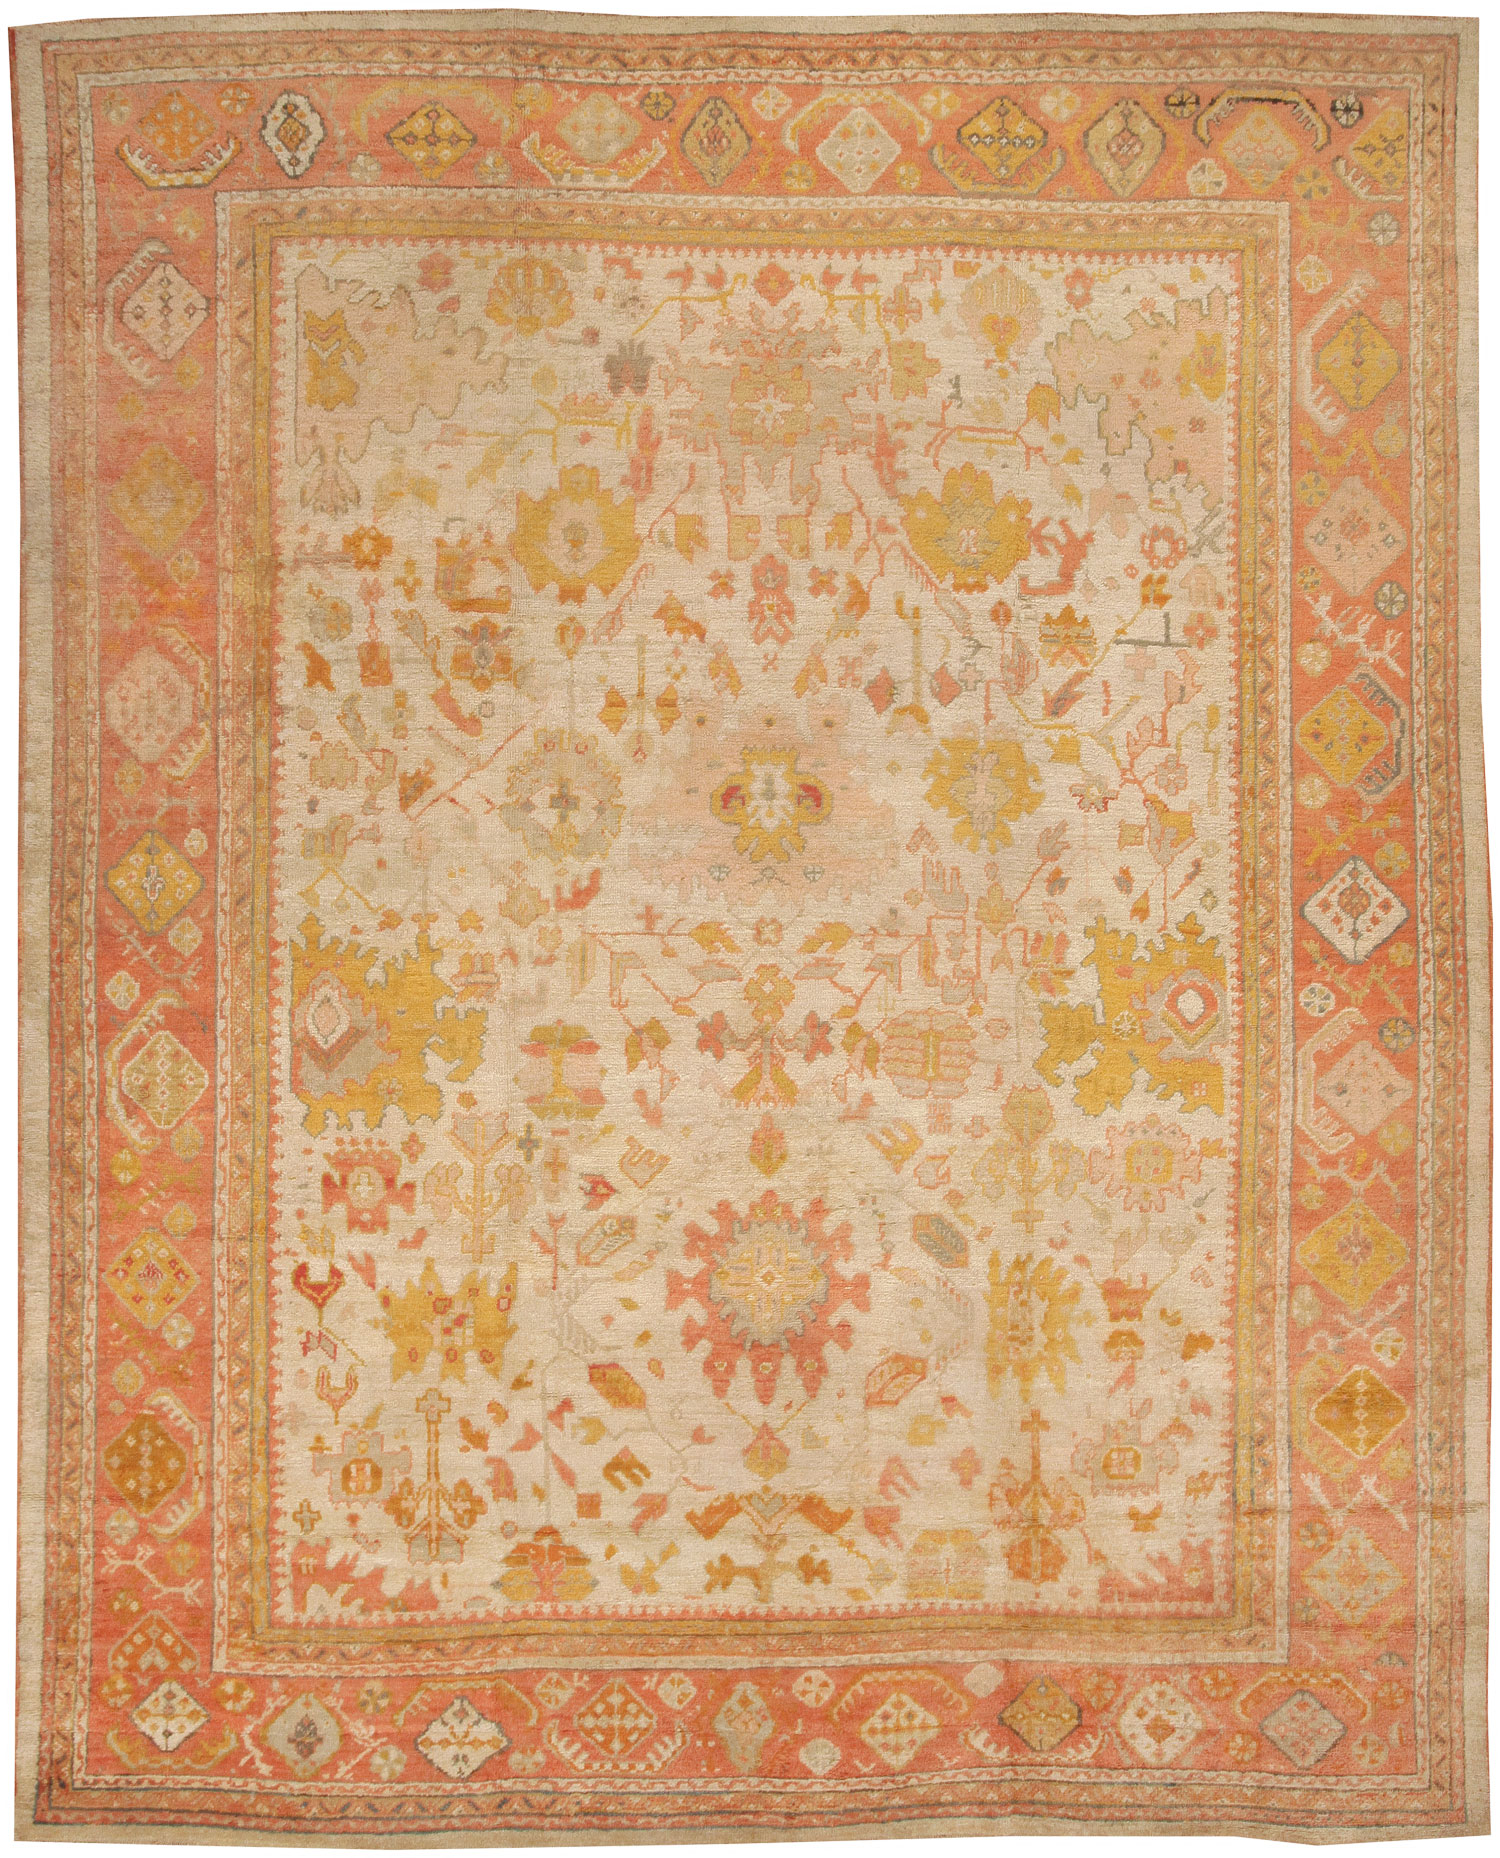 Great ... And Delicate Vines In Shades Of Terracotta, Gold, And Mauve Unfolds  With Consummate Grace Across An Ivory Field On This Exquisite Antique Oushak .